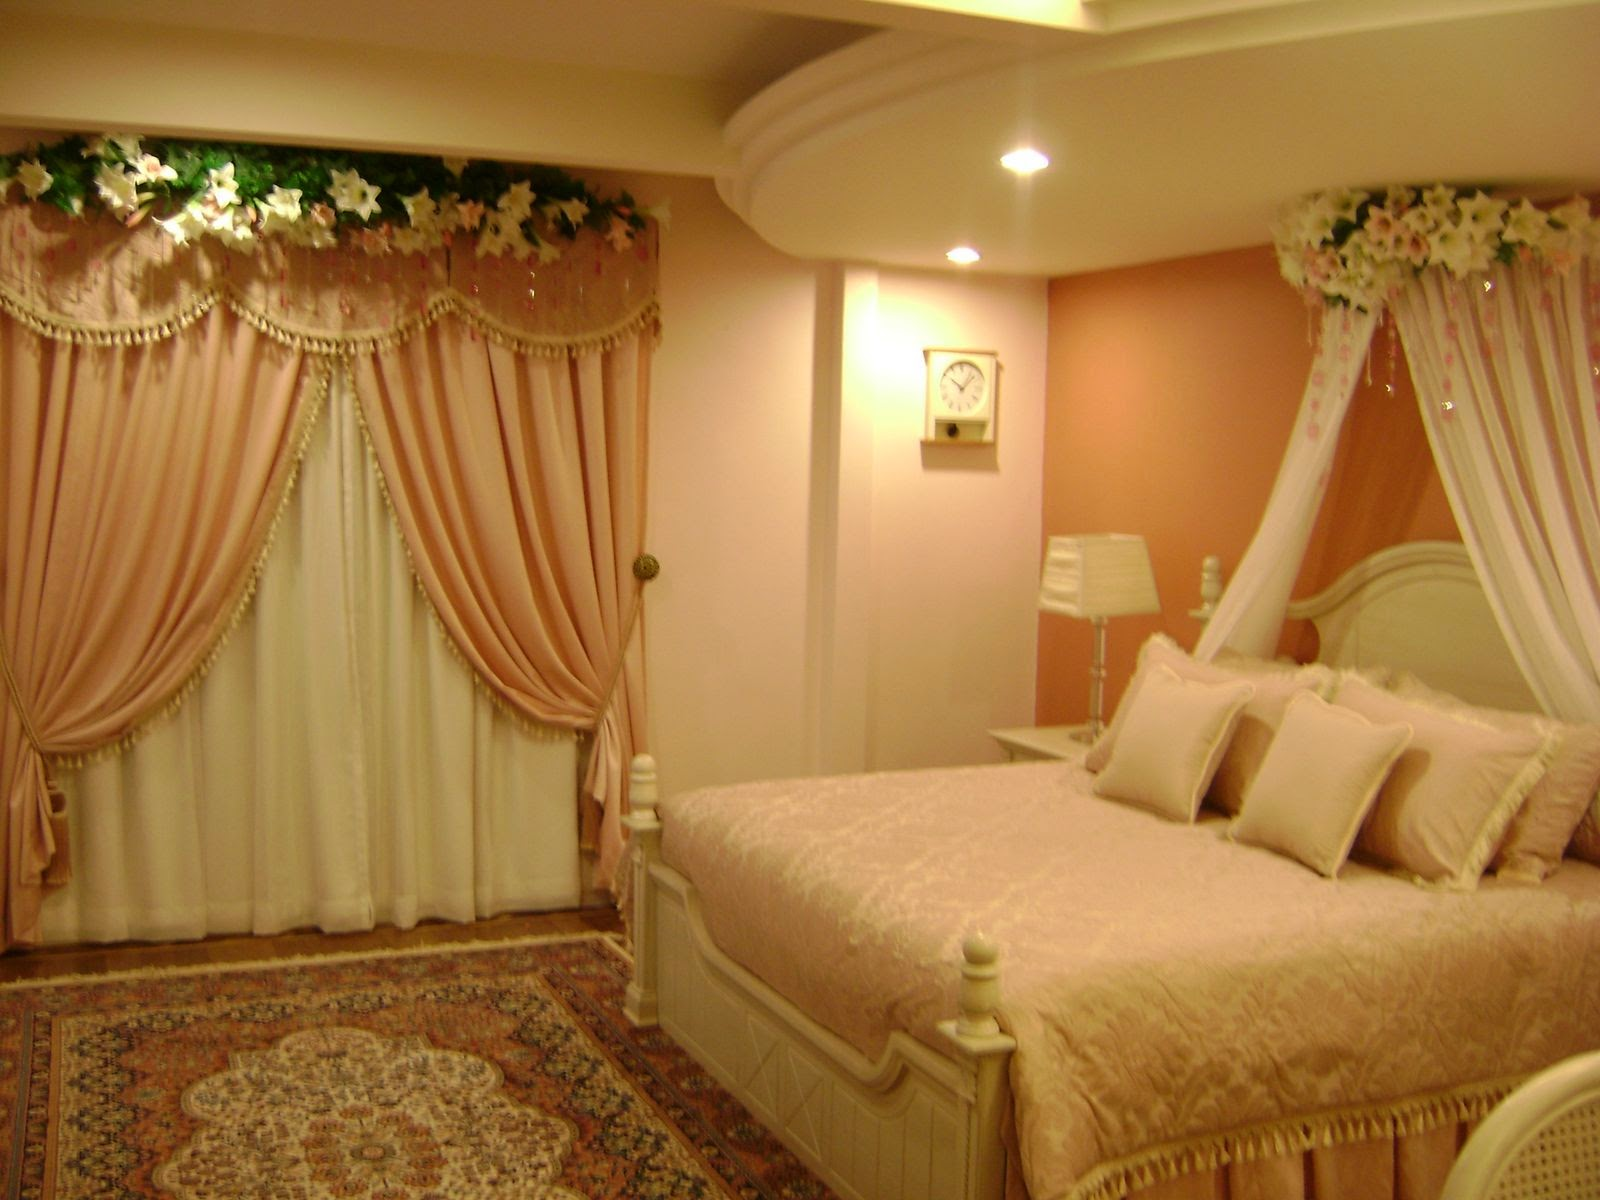 Bedroom decorating ideas for wedding night - Bedroom Decorating Ideas For Wedding Night